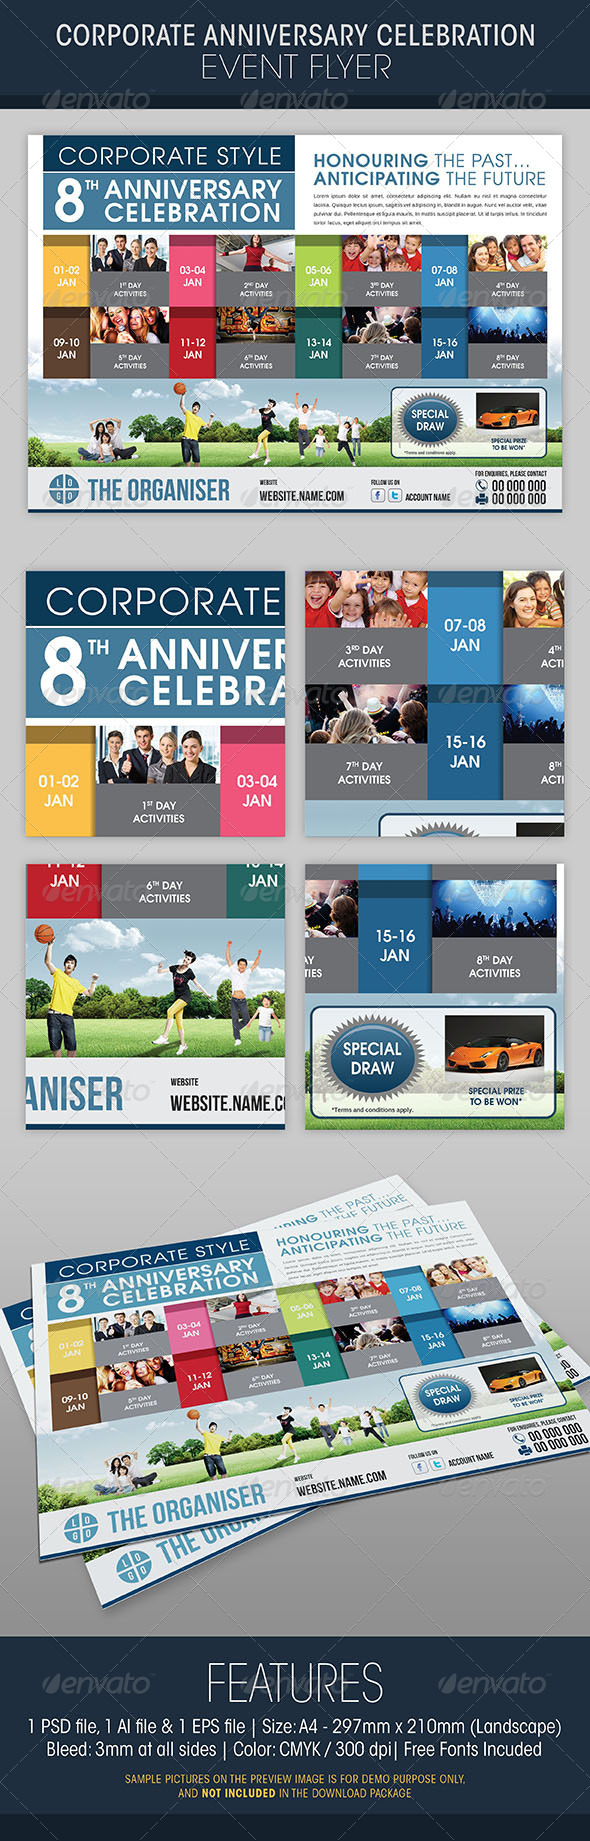 GraphicRiver Corporate Anniversary Celebration Event Flyer 5337743